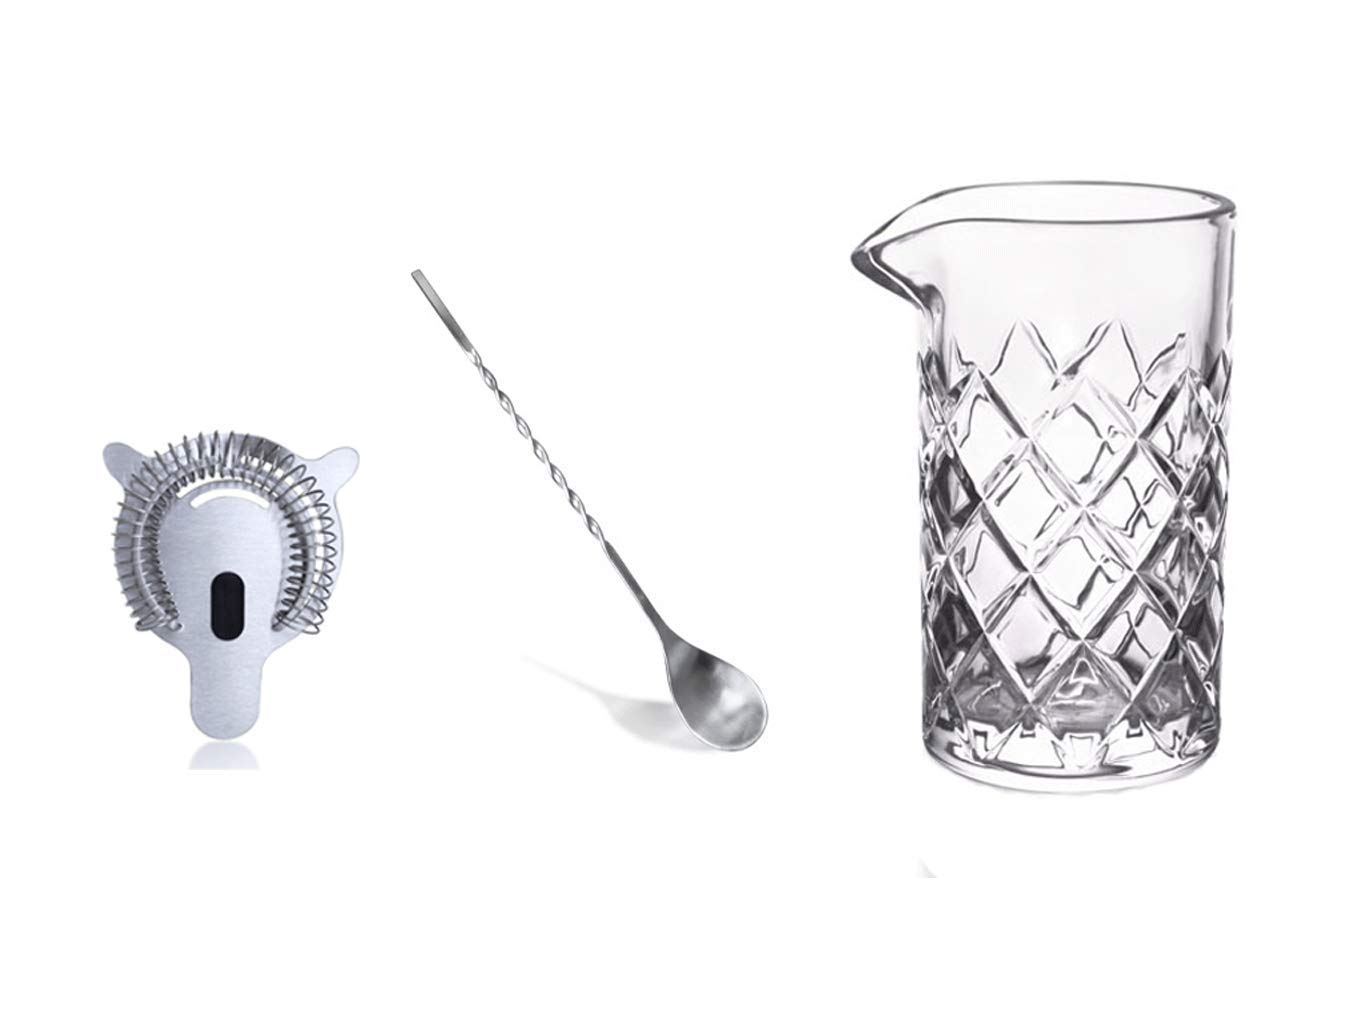 Large (22oz/650ml) Cocktail Mixing Glass by Bar Products. Thick Walled Glass with Diamond Cut Pattern. Includes 10inch Stainless Steel Bartender Spoon and Soft Touch Hawthorne Strainer. Made in USA.